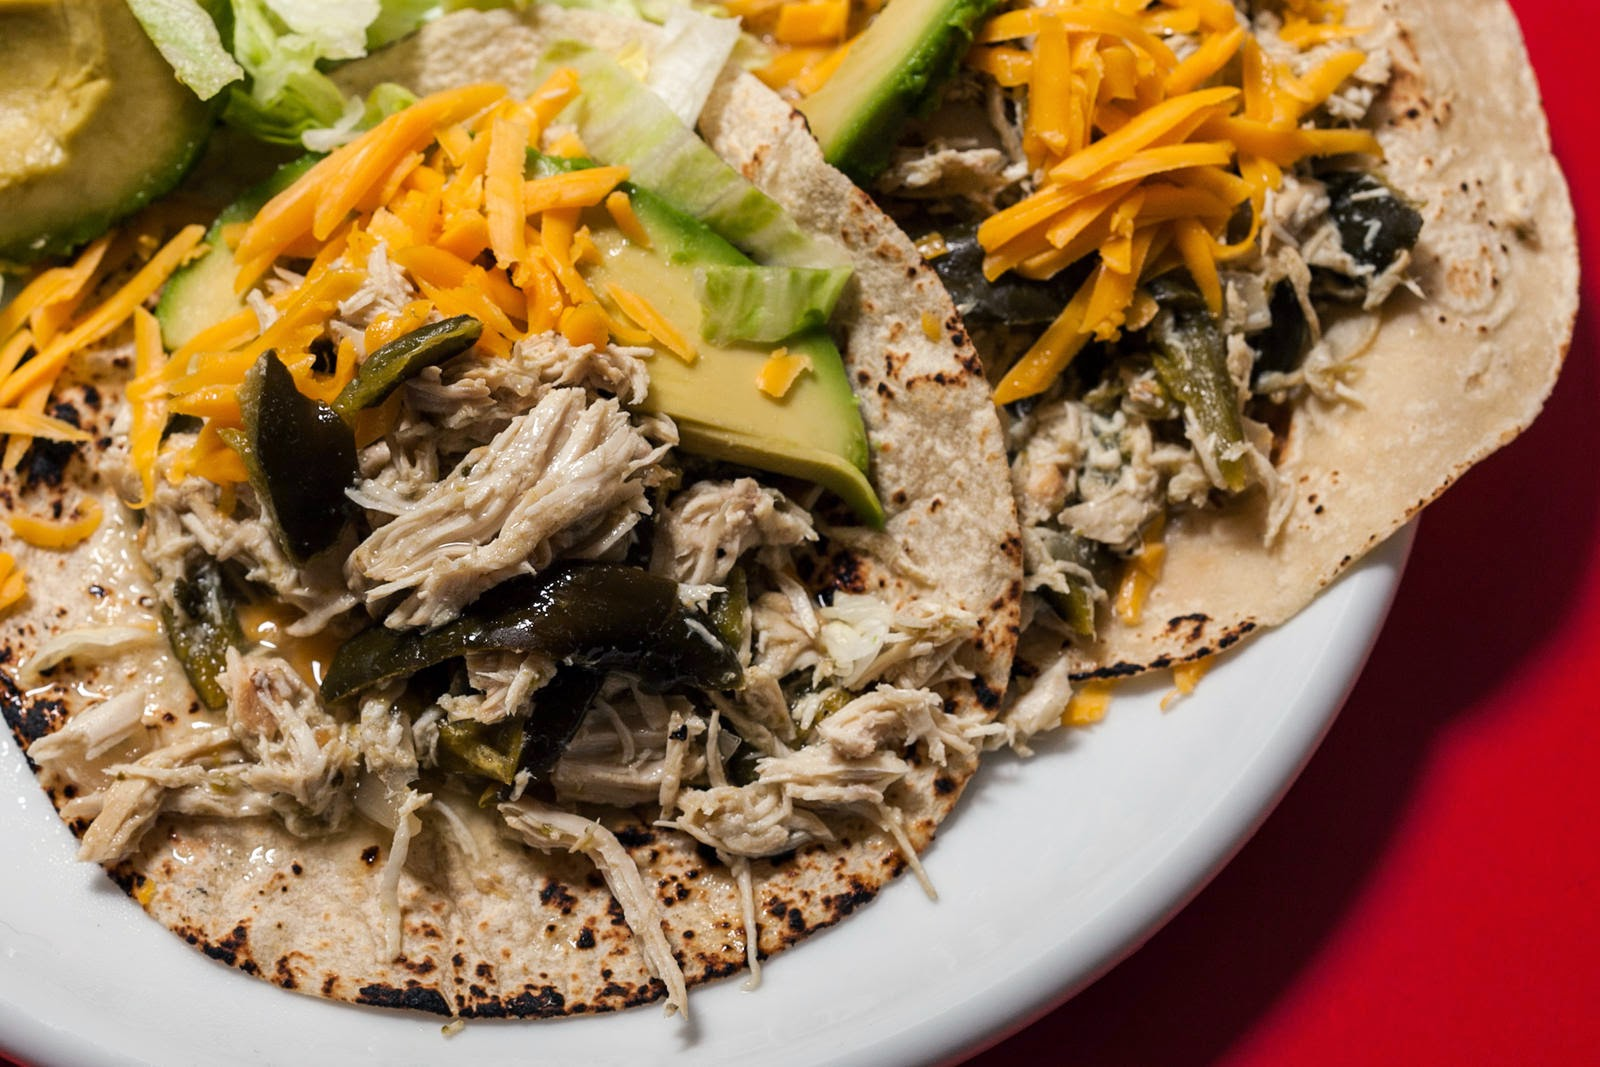 8 Meals to Make in the Crockpot